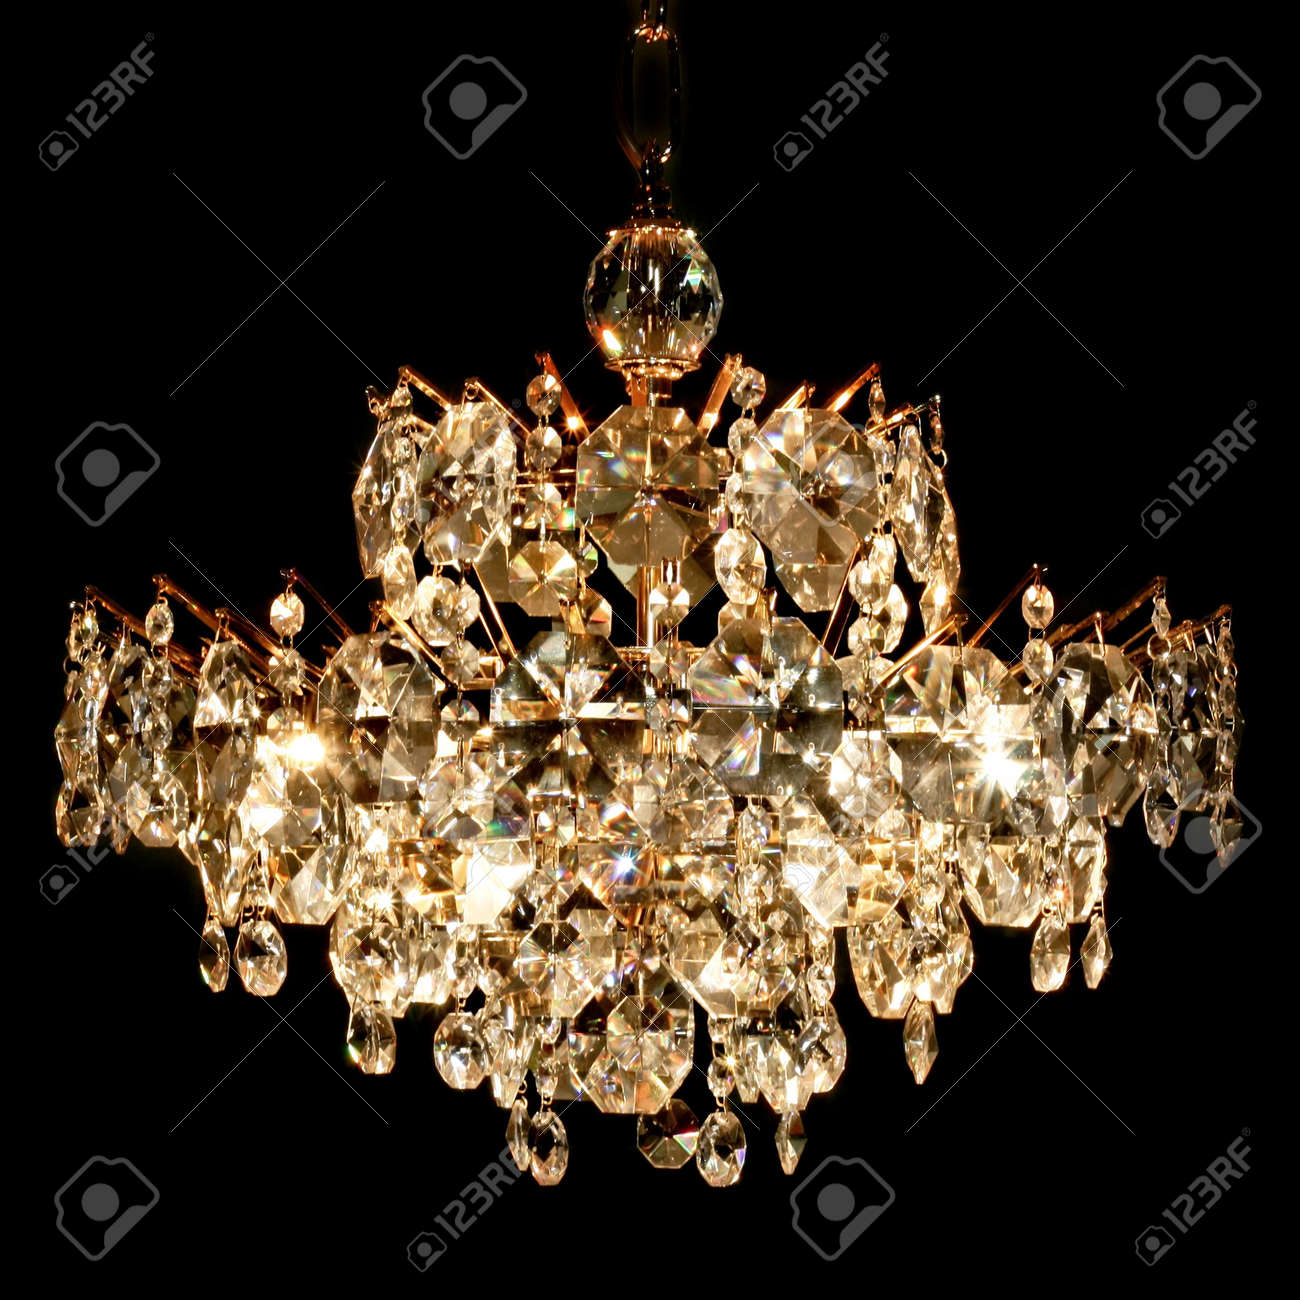 Big luxury chandelier with lot of crystals stock photo picture and big luxury chandelier with lot of crystals stock photo 3206261 aloadofball Image collections